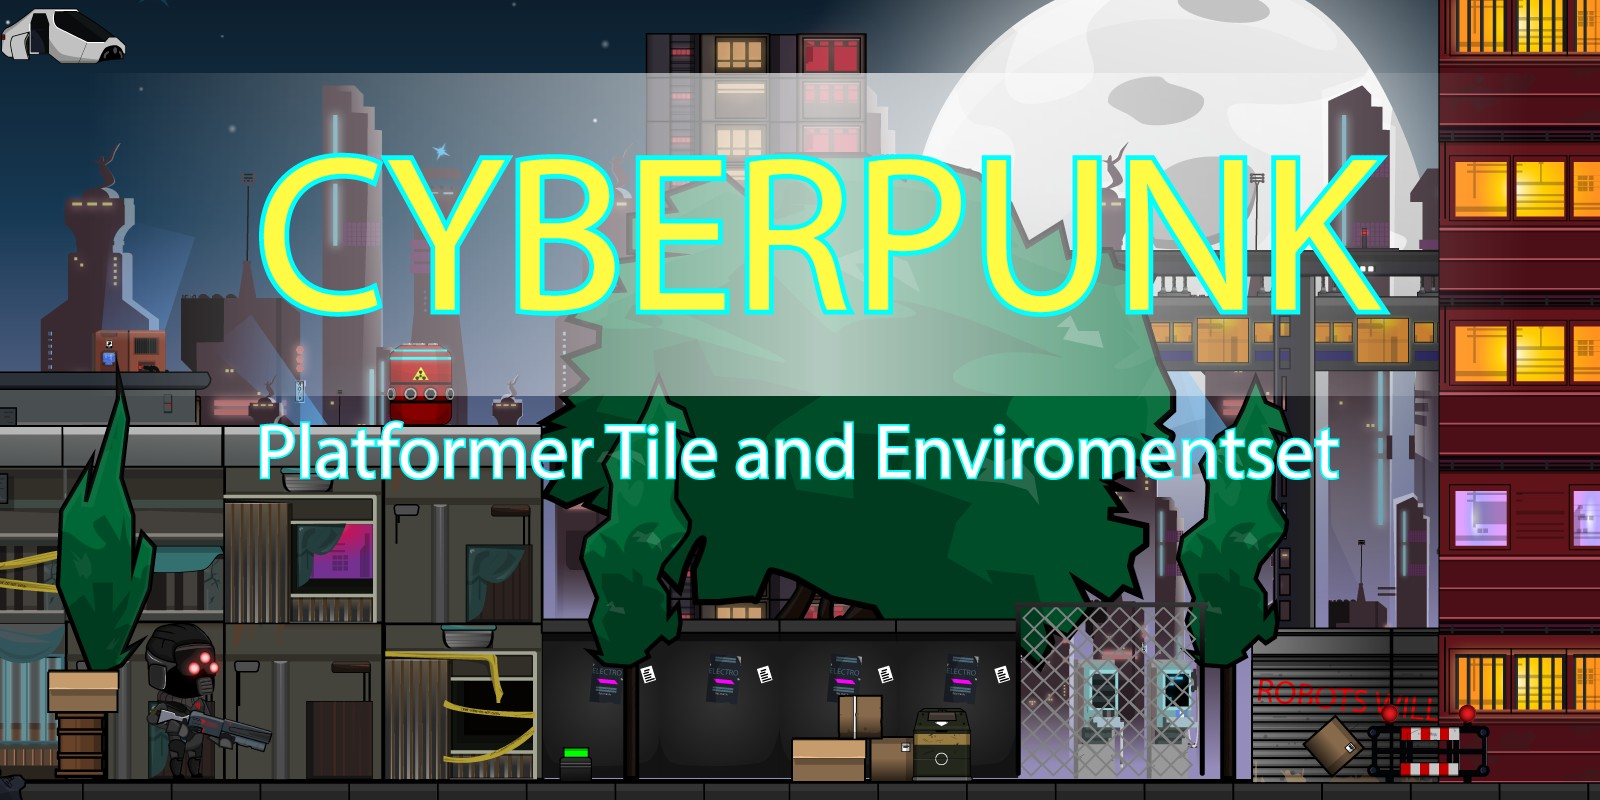 Cyberpunk Platformer Game Tile and Enviromentset